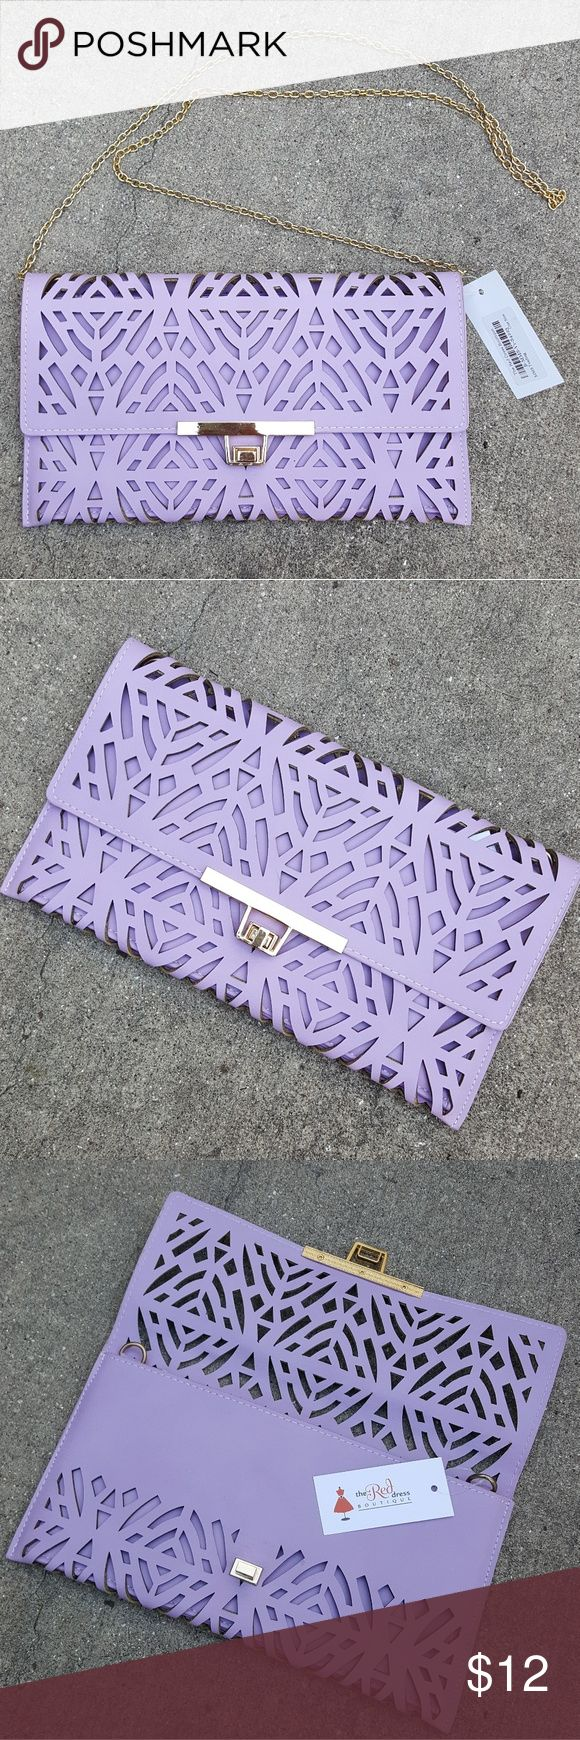 Lasercut lavender/purple clutch / shoulder bag NWT laser cut clutch with removable shoulder chain! Purchased from Red Dress Boutique and never used. Has gold hardware and is in perfect condition! Smoke free, pet friendly home. Red Dress Boutique Bags